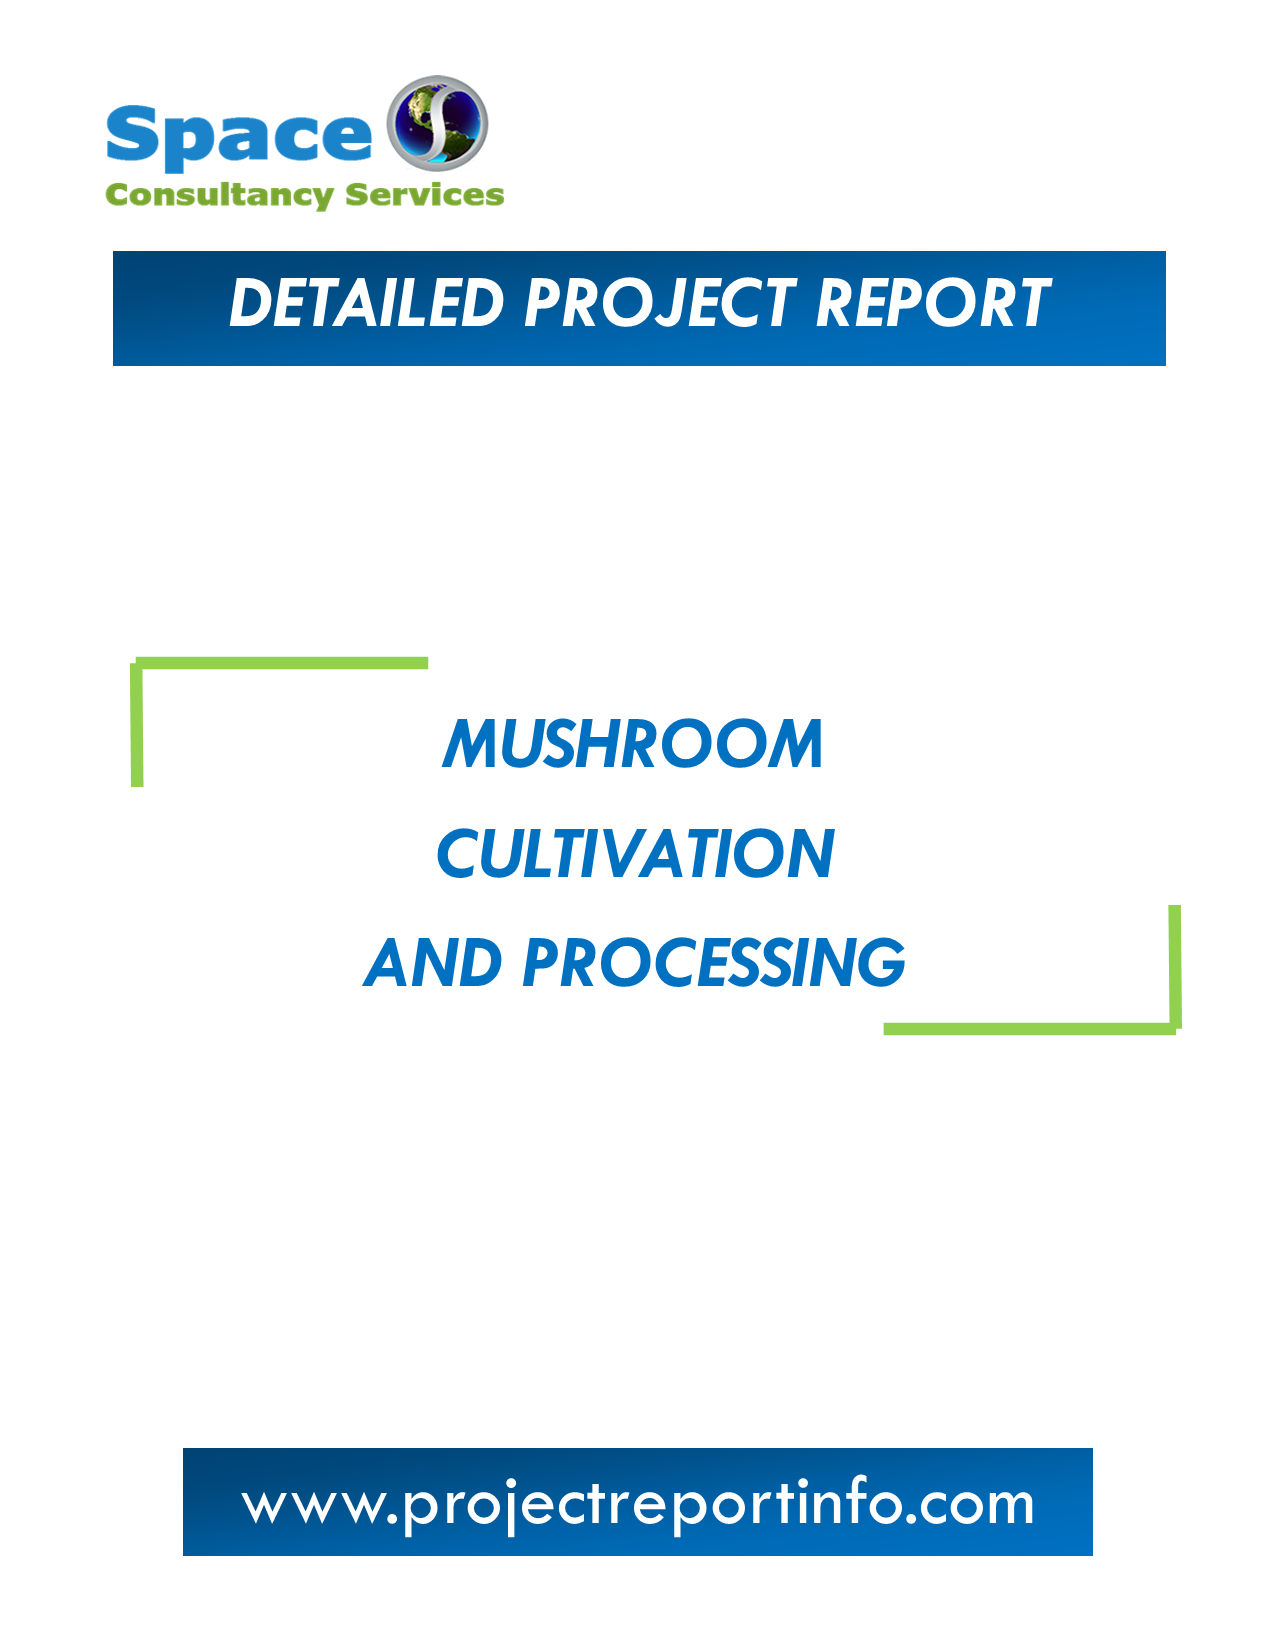 Project Report on Mushroom Cultivation and Processing